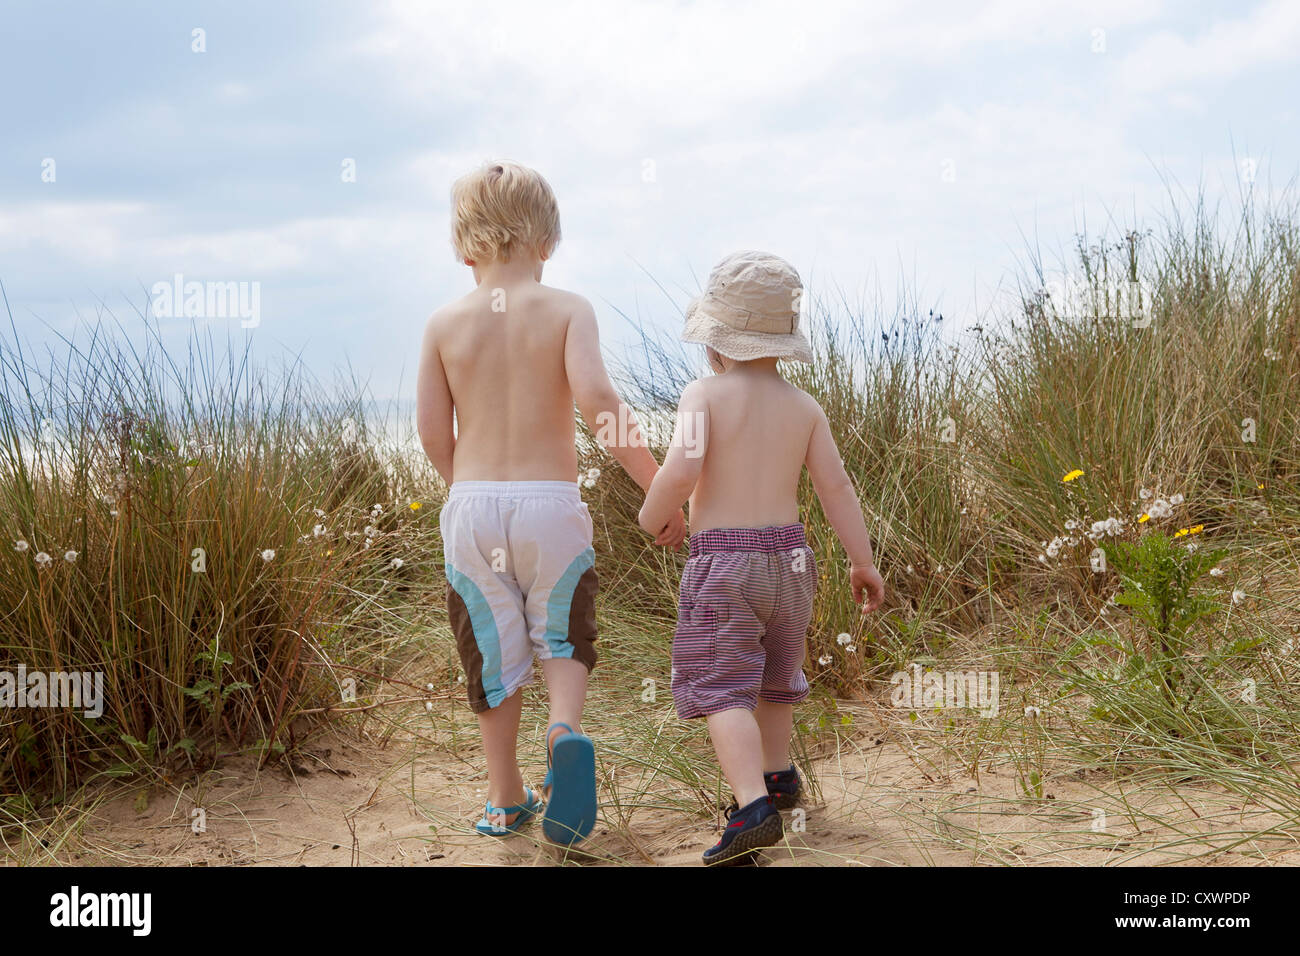 Boys holding hands in grassy sand - Stock Image